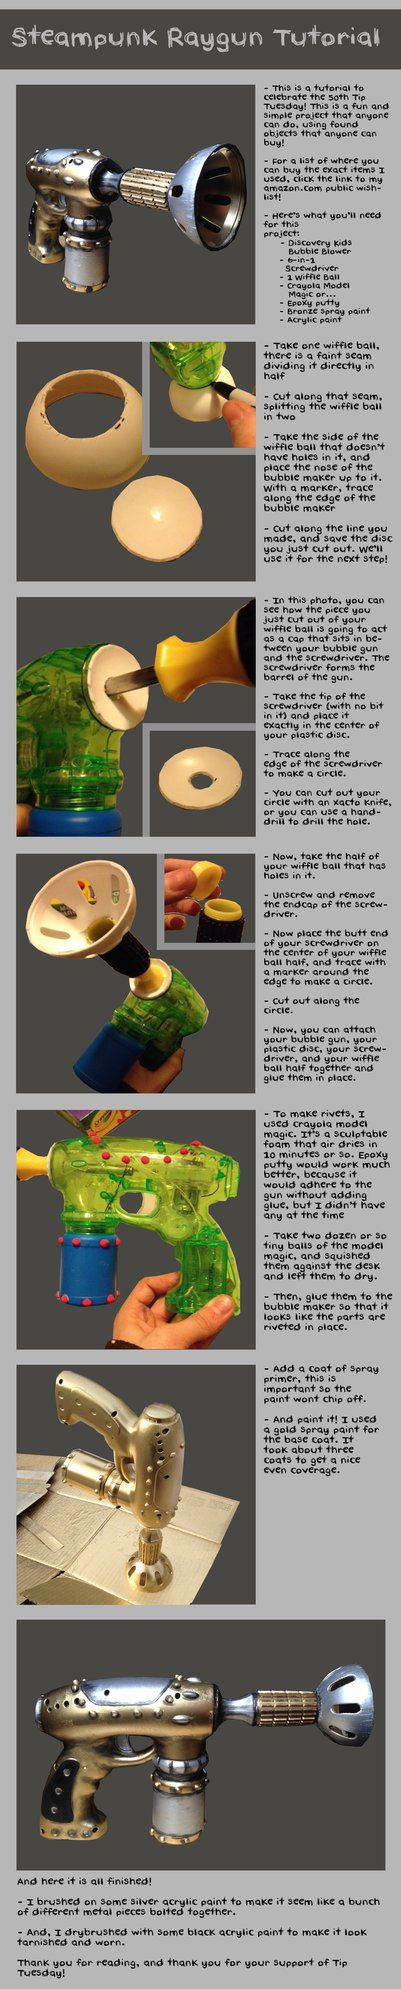 Kind of cute steampunk ray gun mod using bubble blower, wiffle ball, and a screwdriver. It's a good reminder to remember to use spray paint primer intended for plastic.